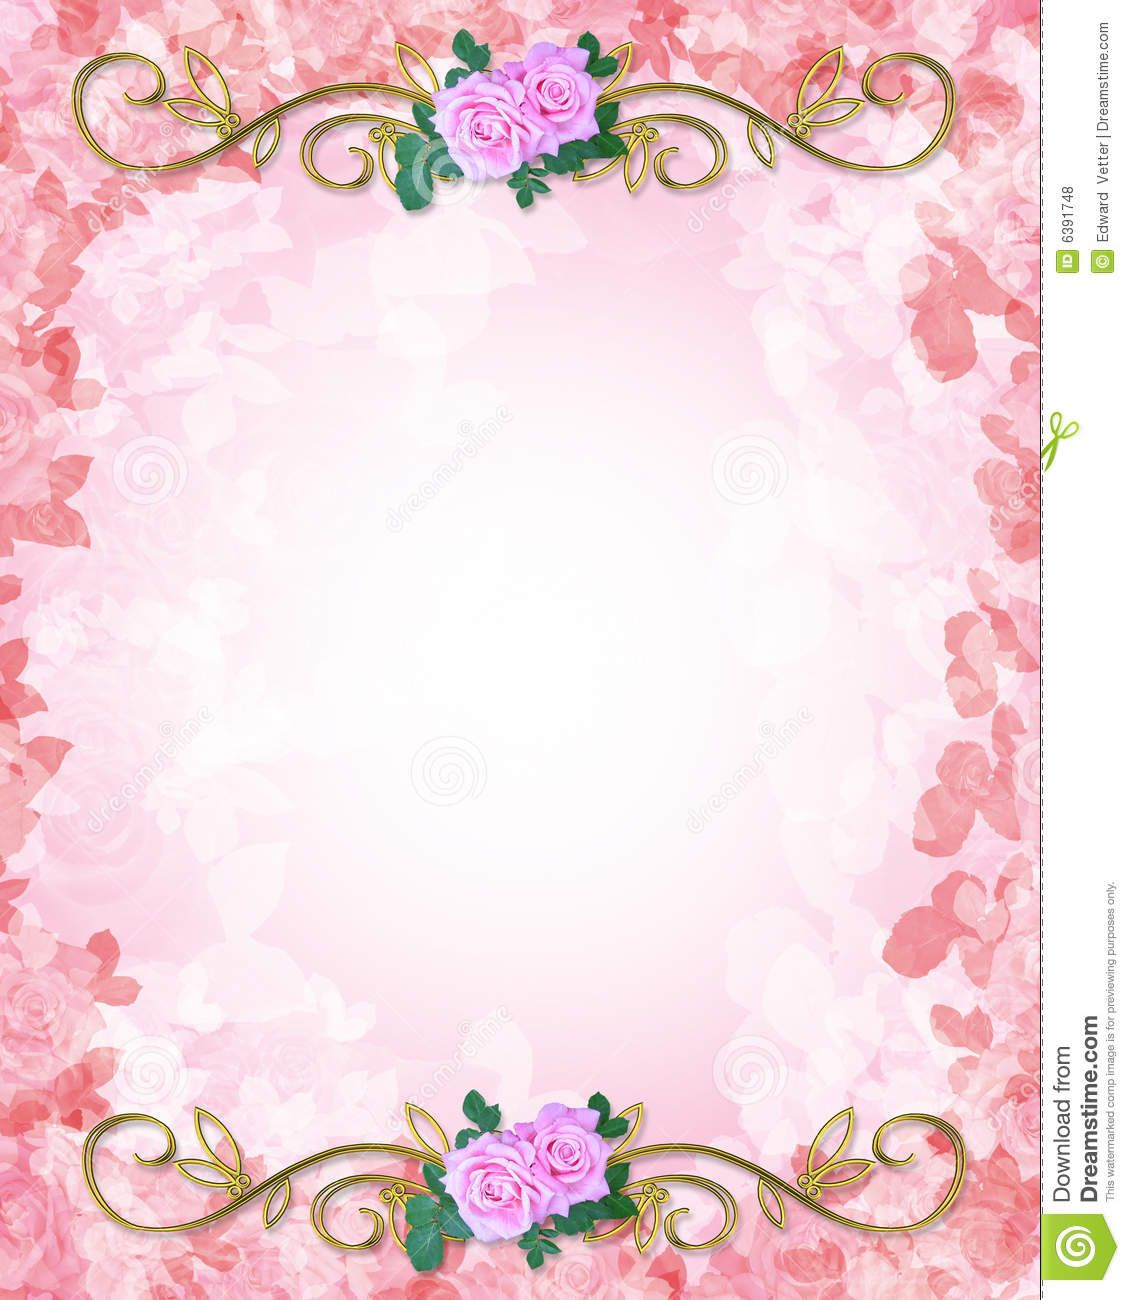 wedding templates free - Google Search | Templates and Digi Stamps ...